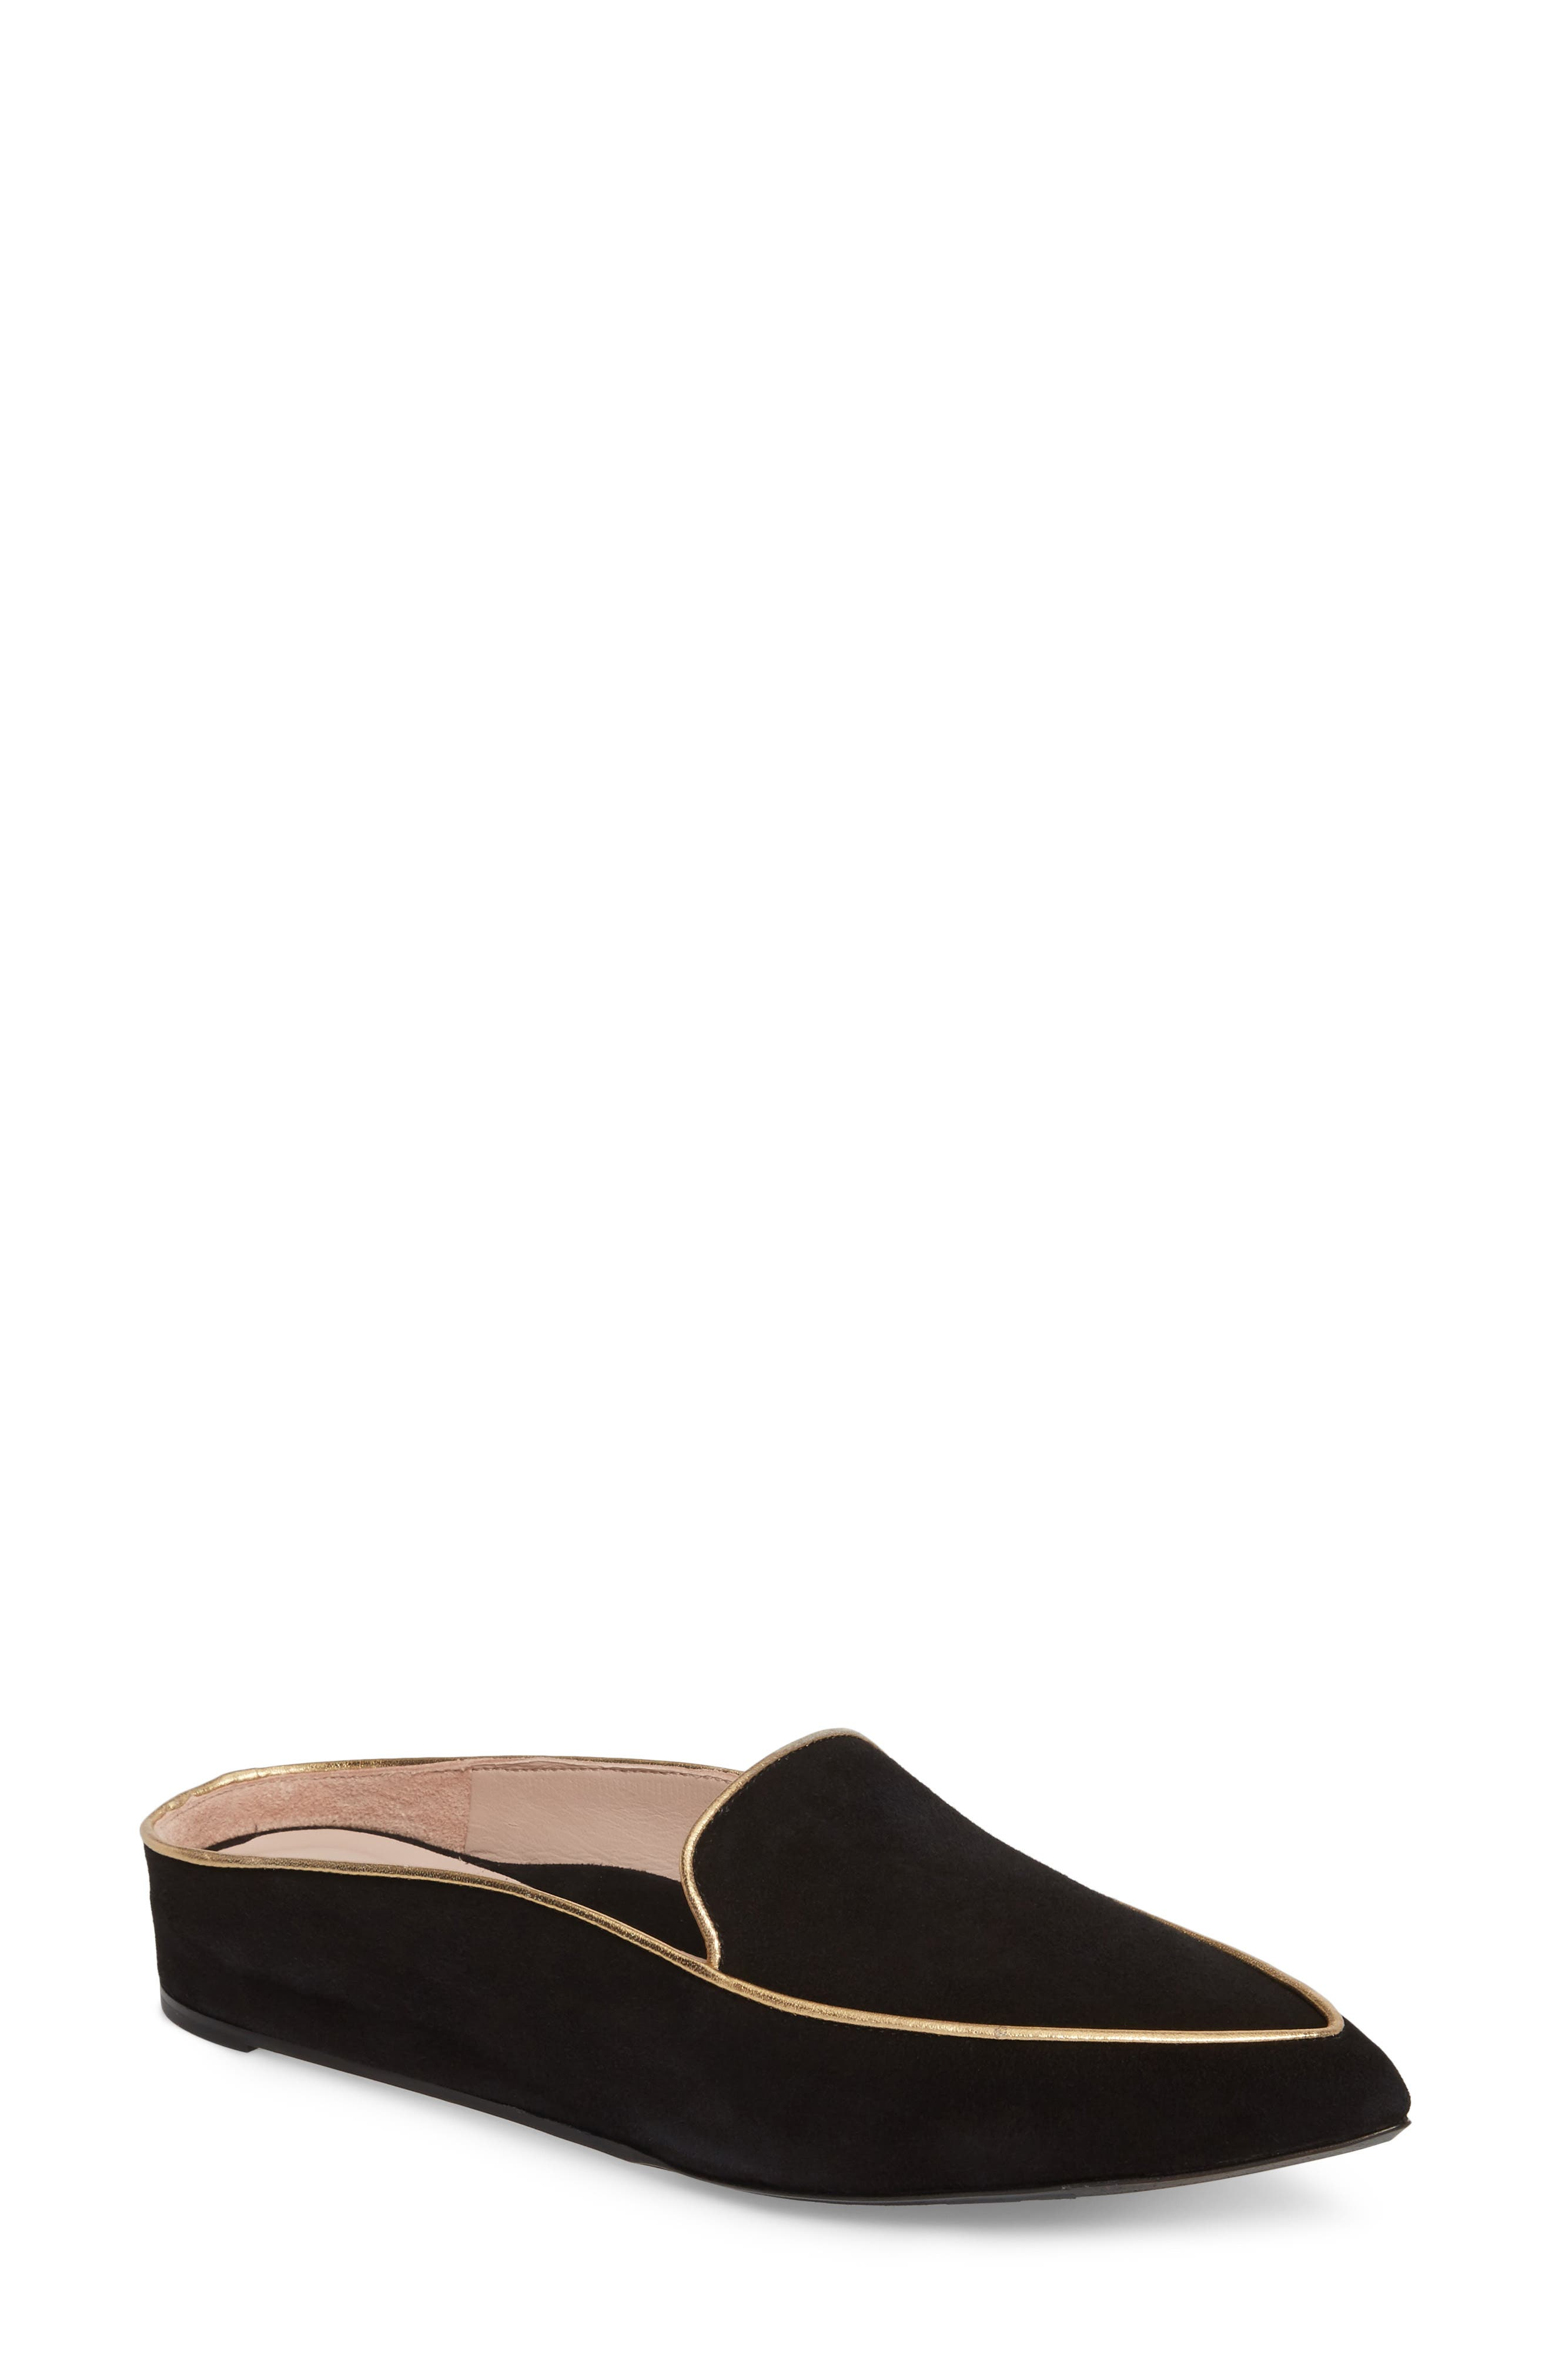 Taryn Rose Renatta Mule,                             Main thumbnail 1, color,                             004